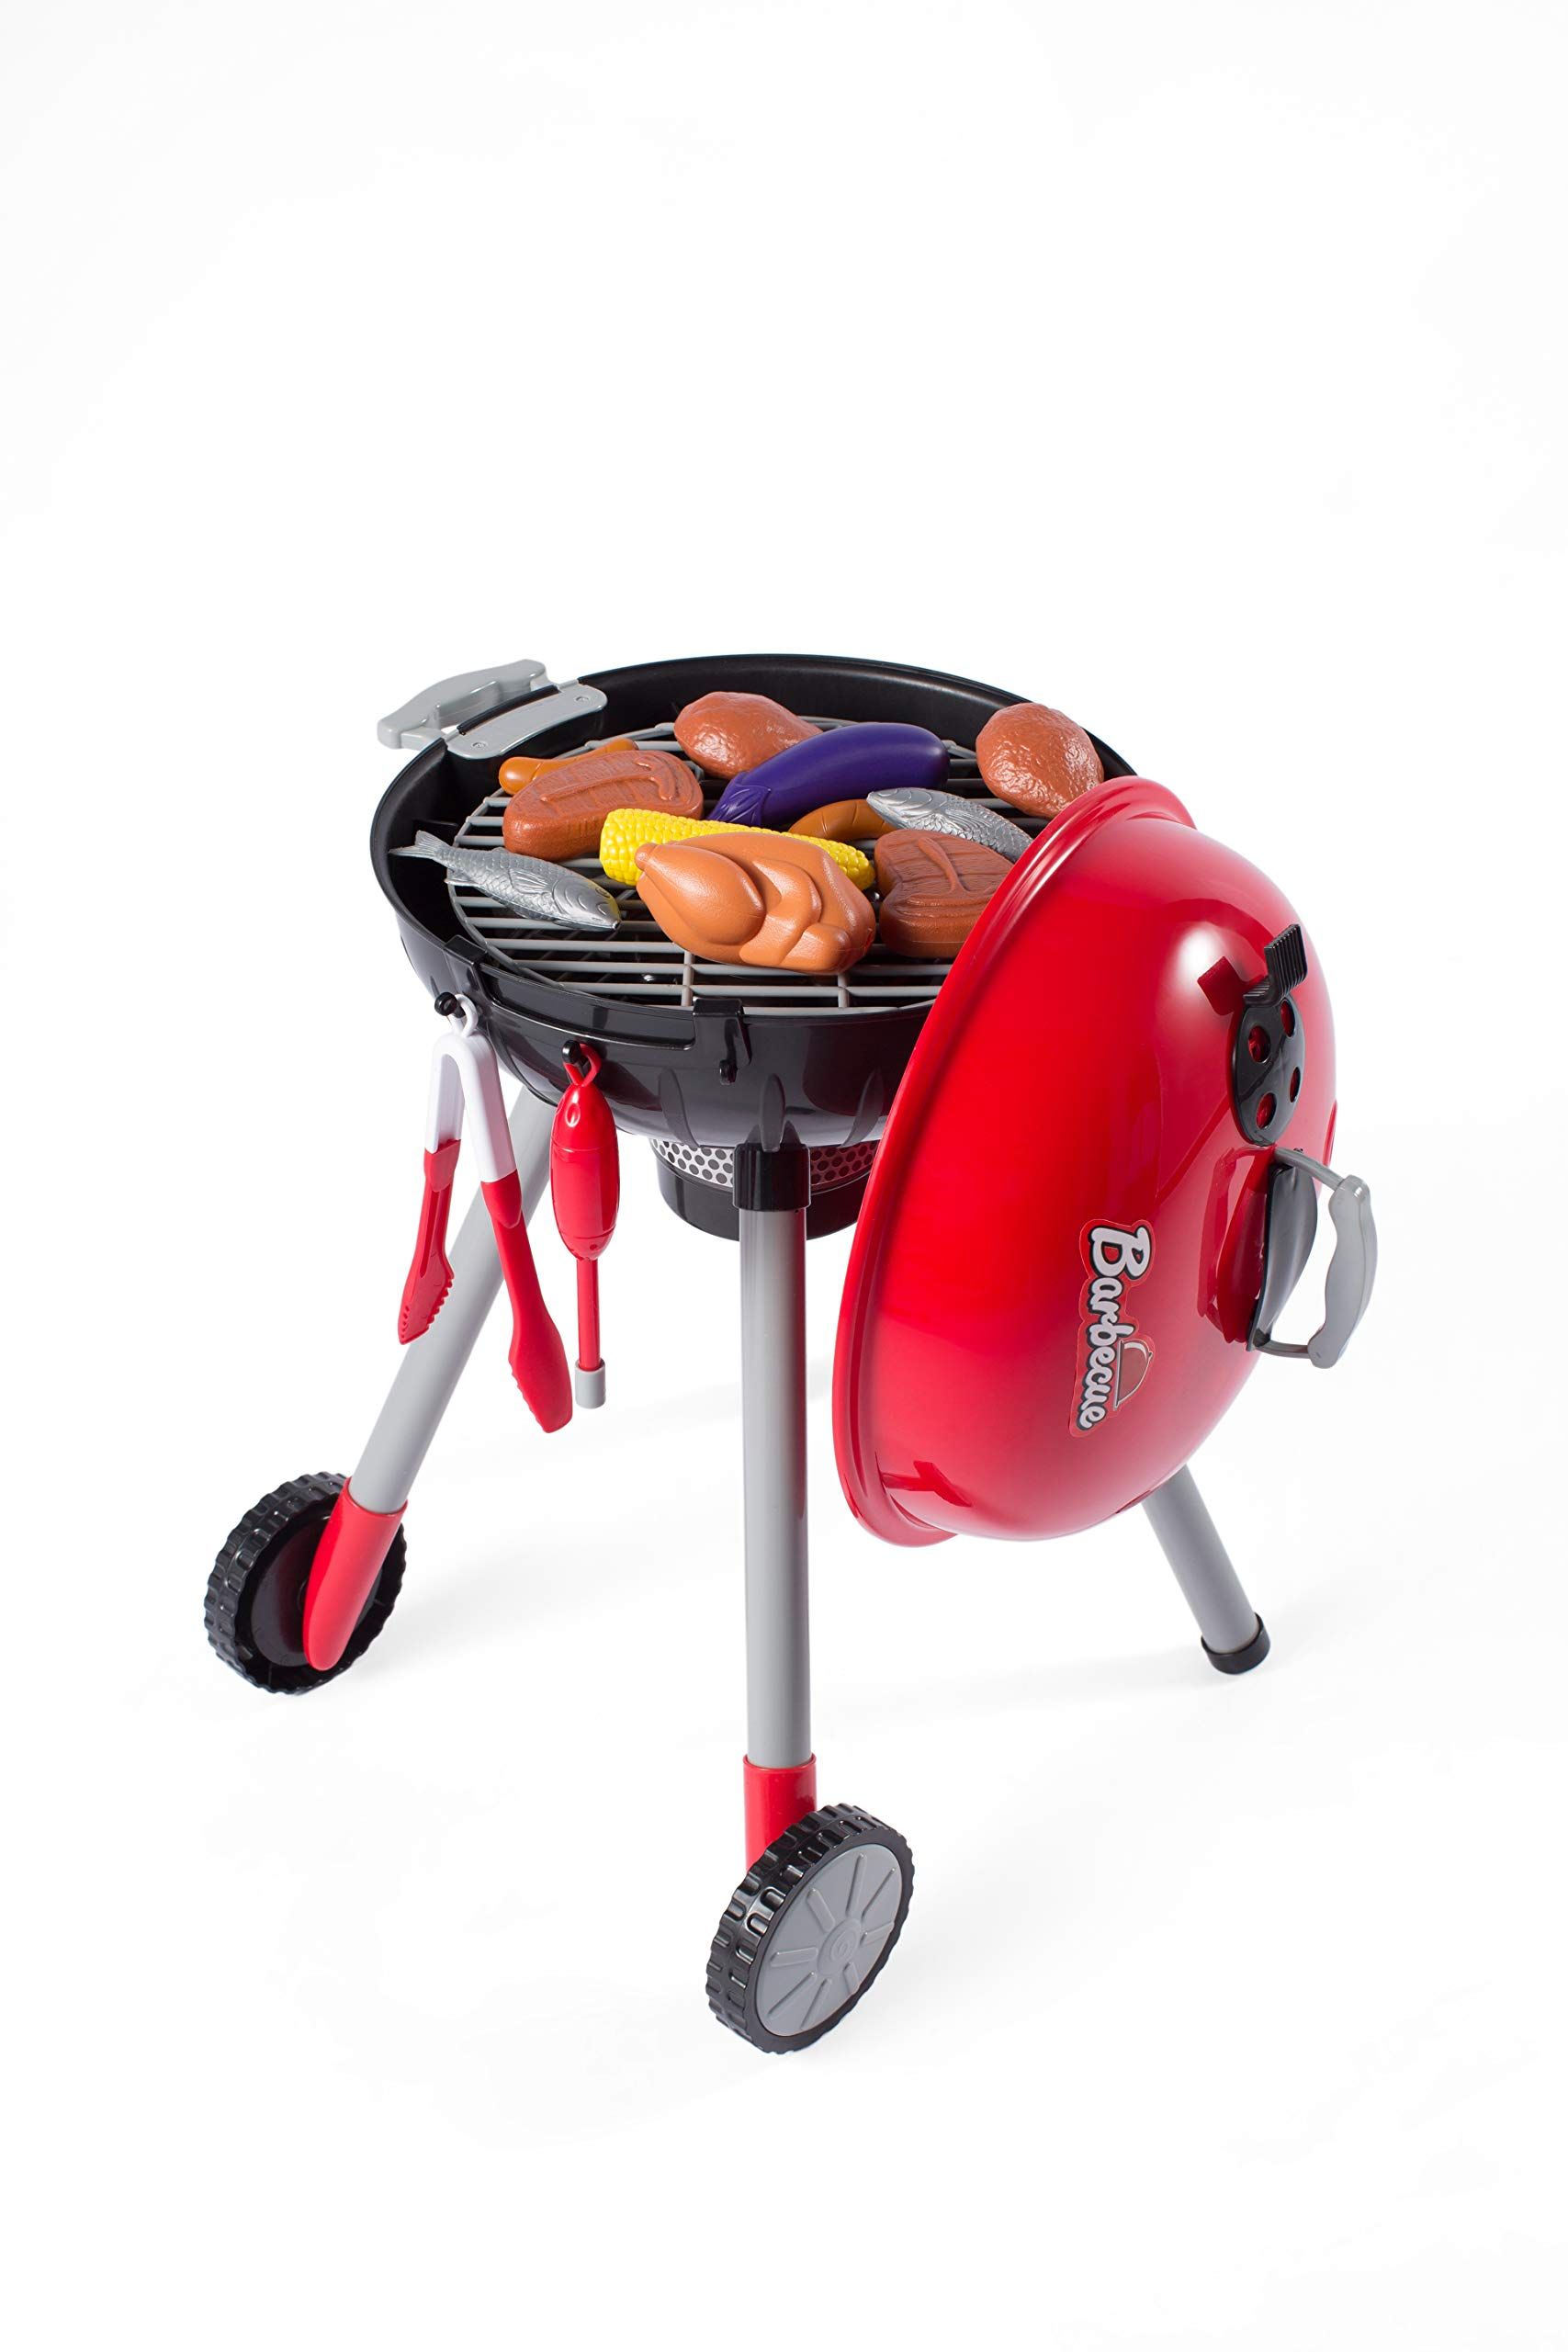 NBD Corp This 8 Piece Backyard Barbeque Get Out 'N Grill Toy Barbeque Grill Set is Great to Have A Realistic Playtime Fun Adventure for Kids and The Whole Family